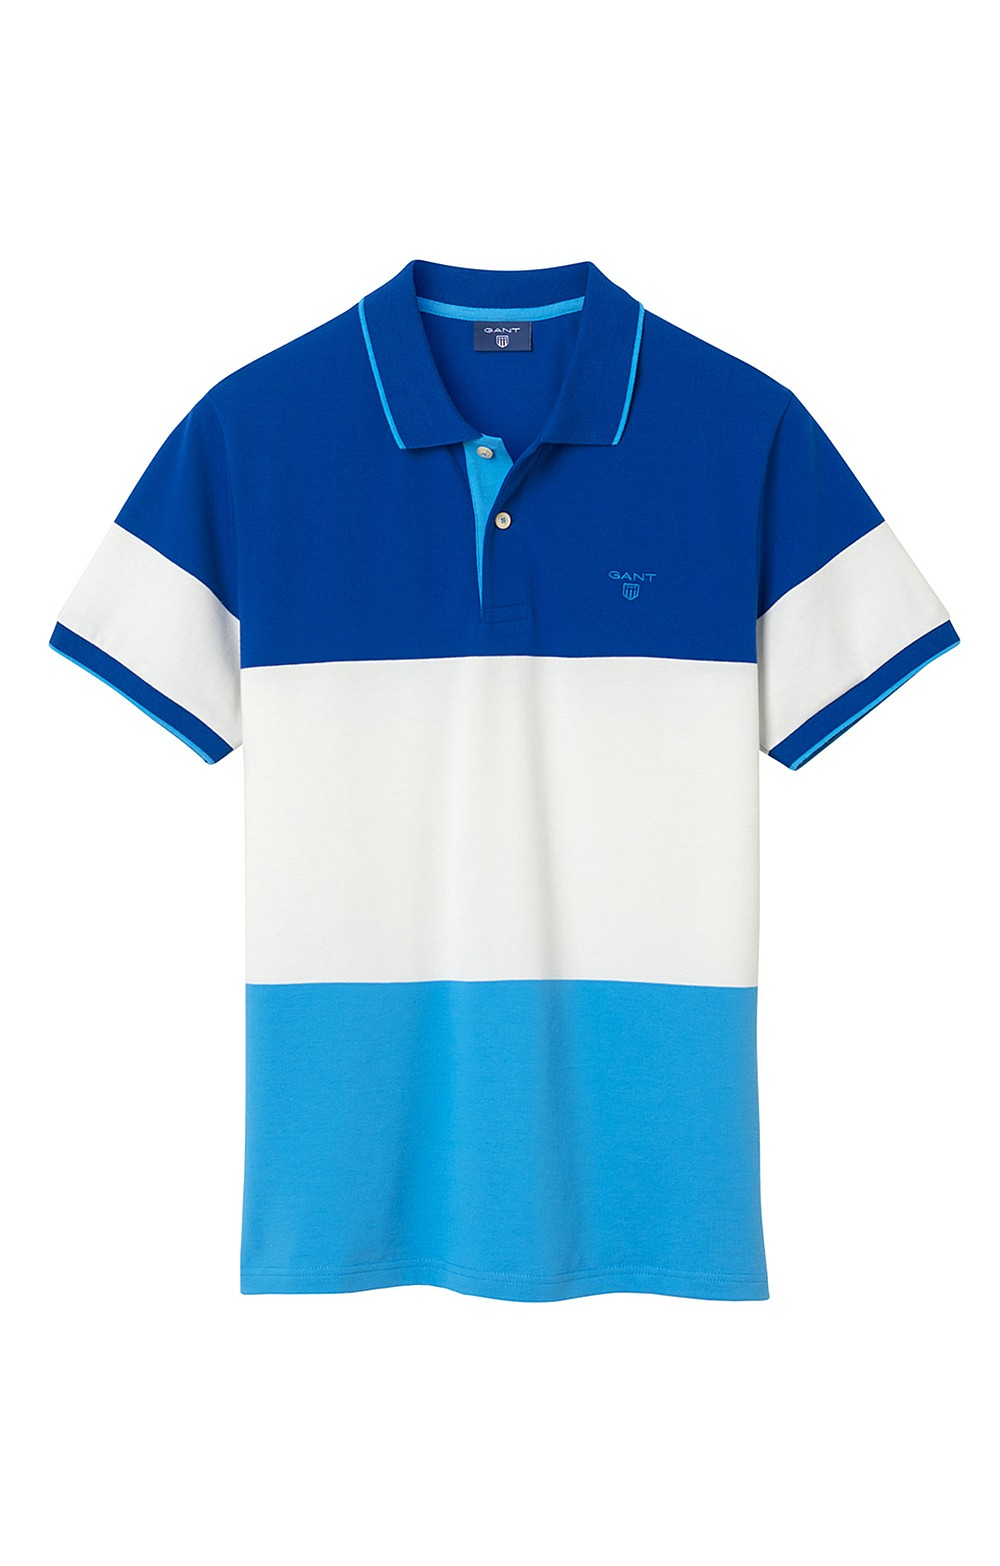 dd599726c1a Gant Colour Block Polo Shirt - House of Bruar